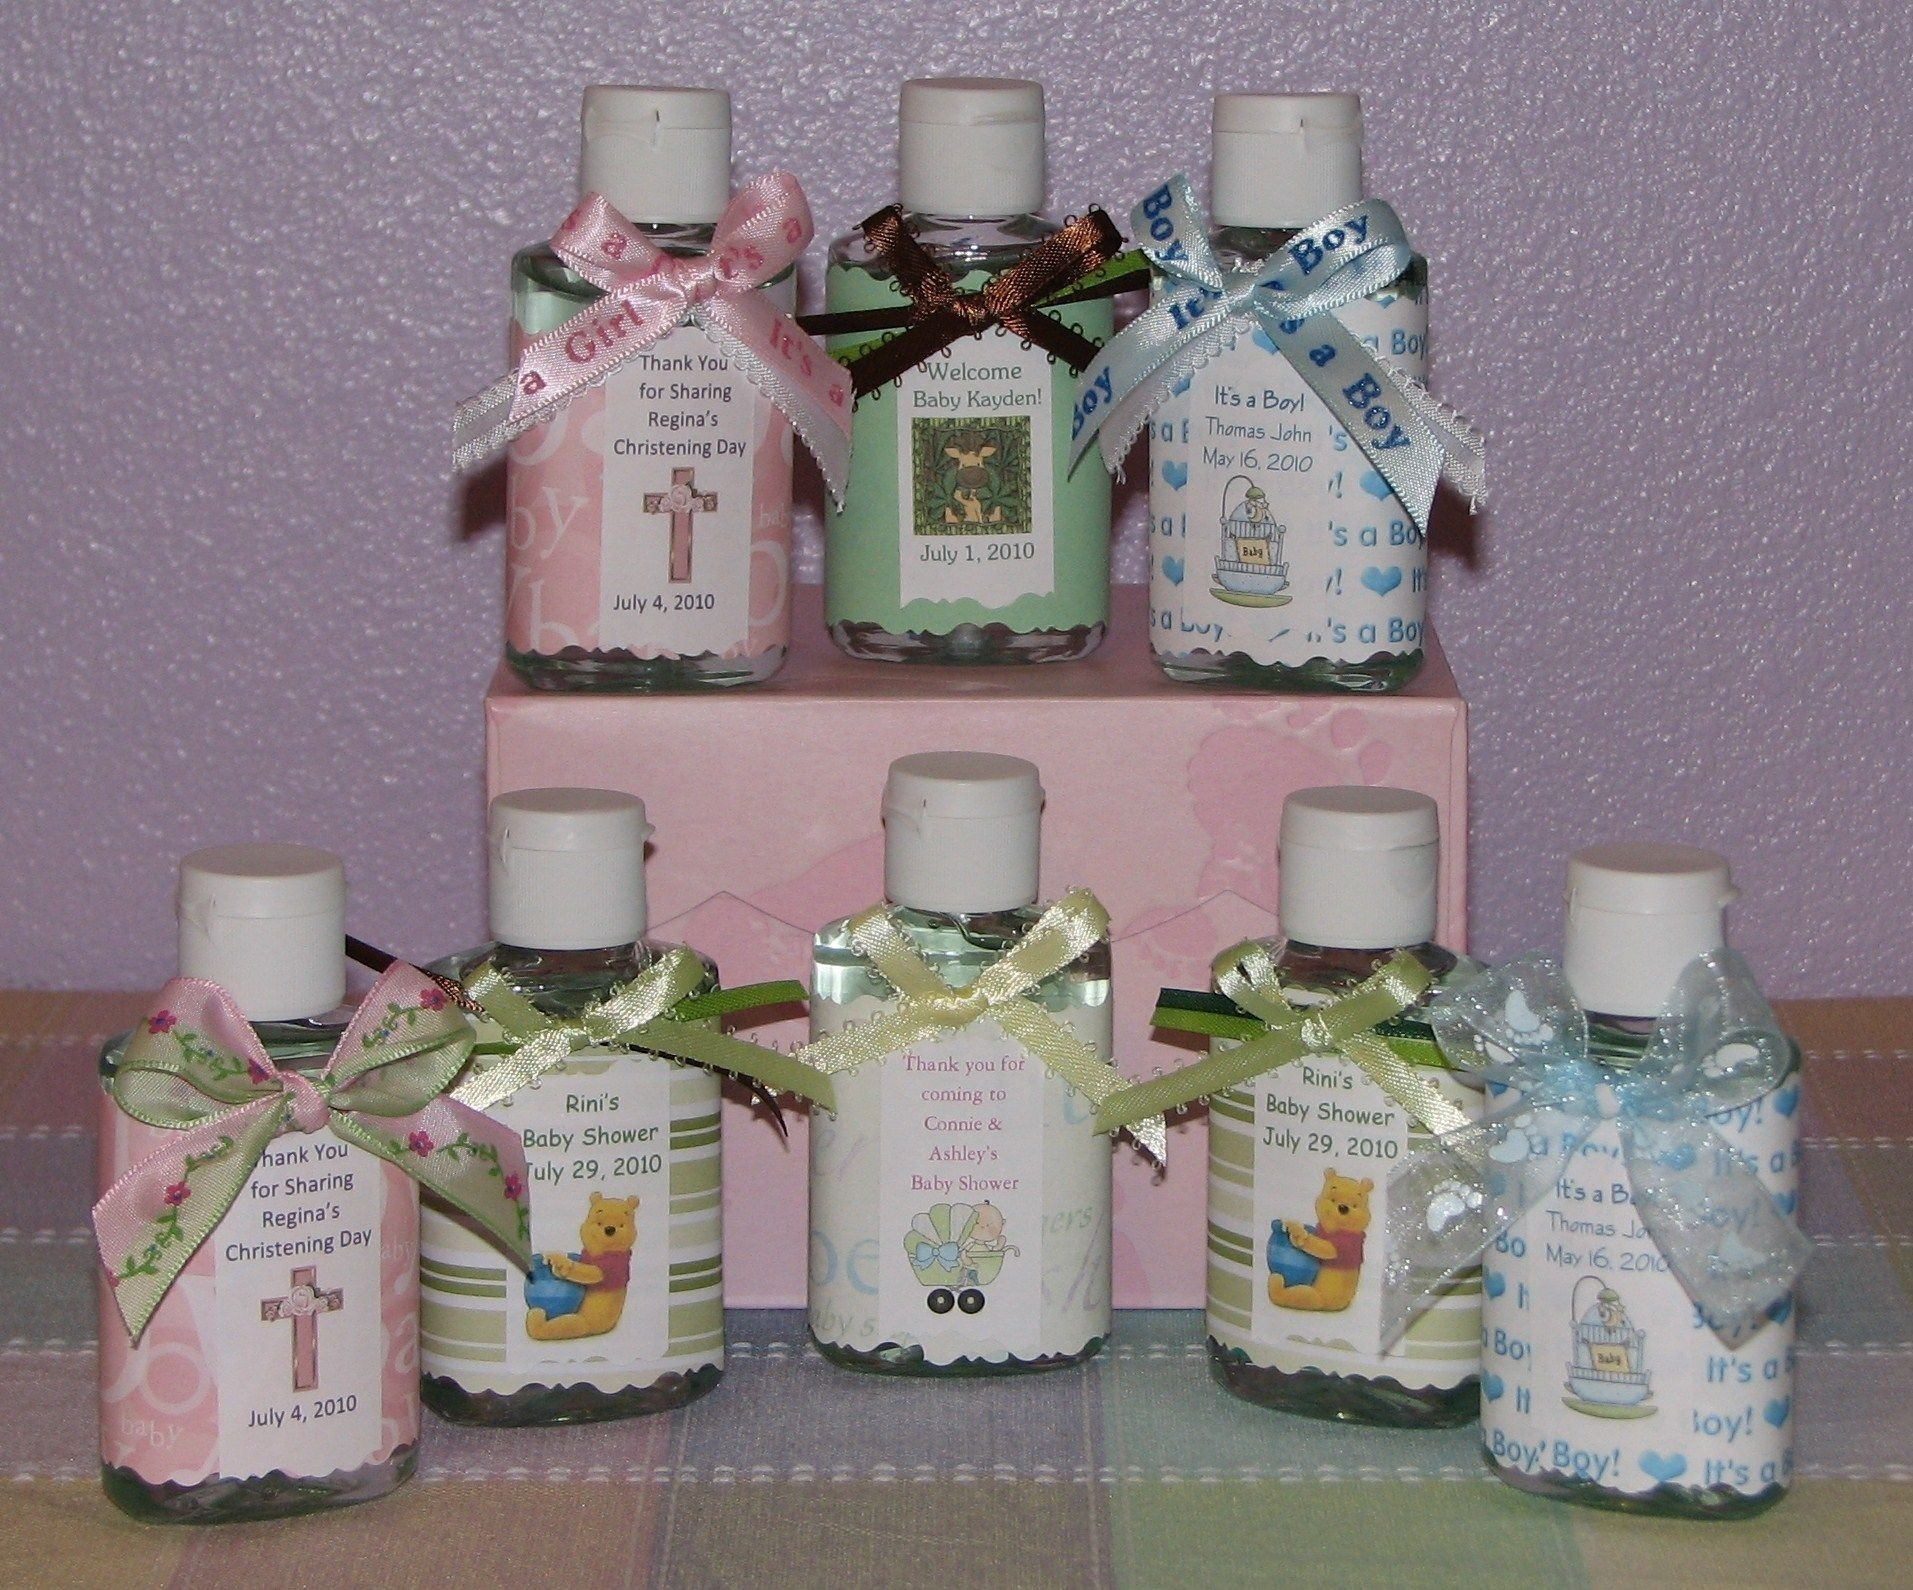 10 Lovable Baby Shower Favors Ideas To Make three creative ideas to make homemade baby shower favors baby 2020